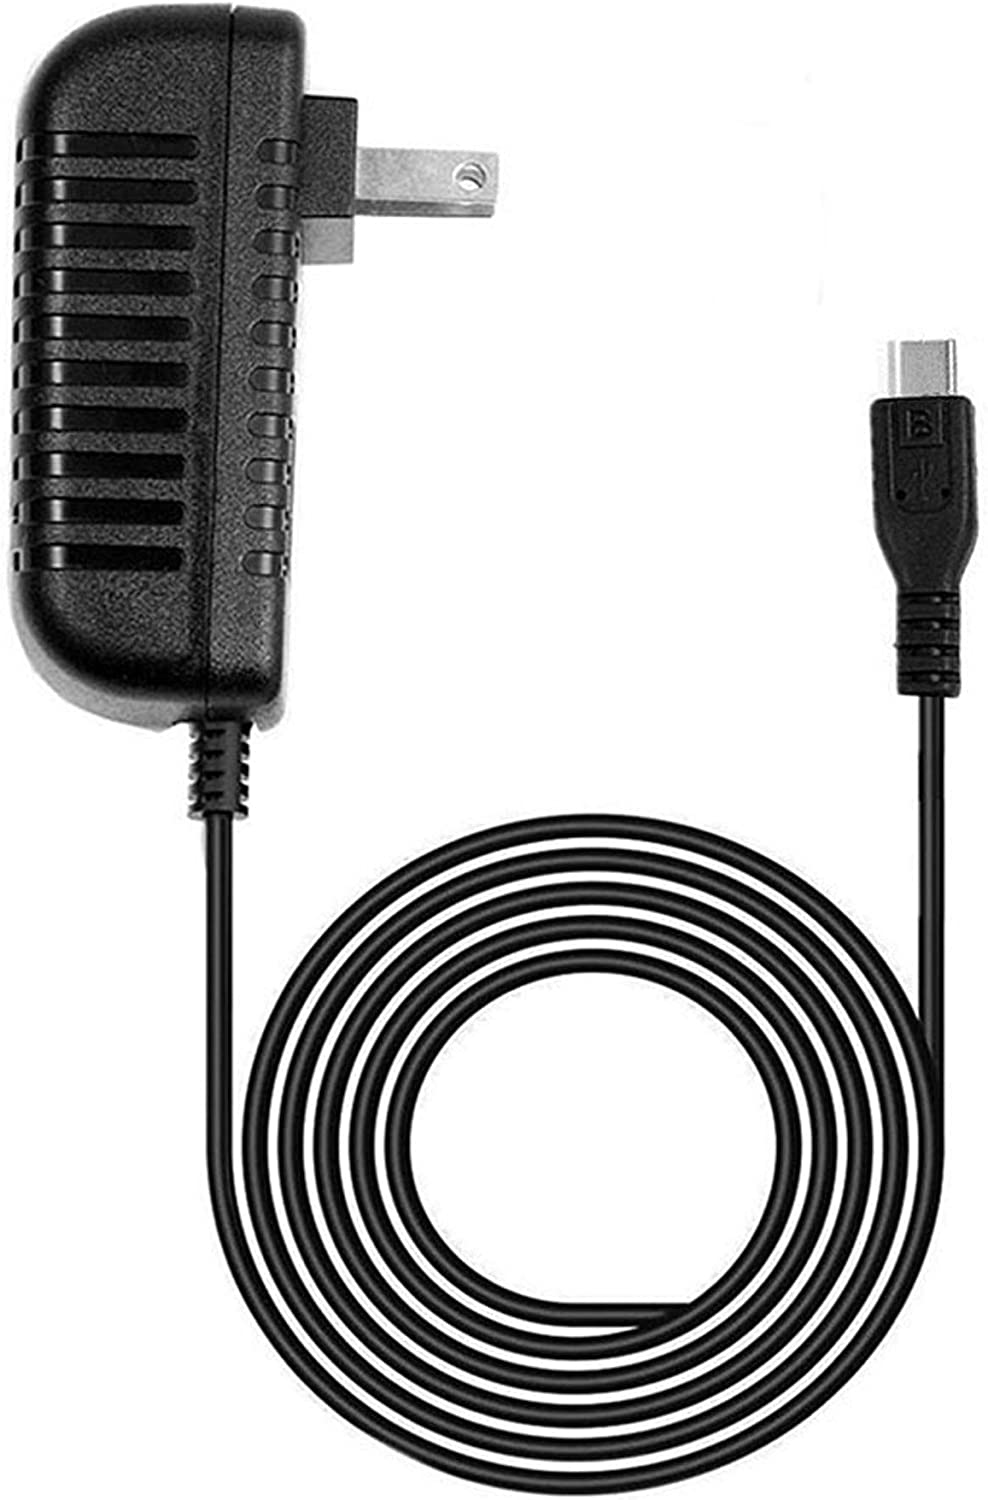 AC Adapter Compatible Replacement for Arctic Air Model 17013 AA-MC4 AAMC4 (w/USB Connector) Portable Evaporative Cooler TM-K007VC-00501500PH-01 Wall DC Power Supply Charger Cord Cable Adaptor, 5 Feet